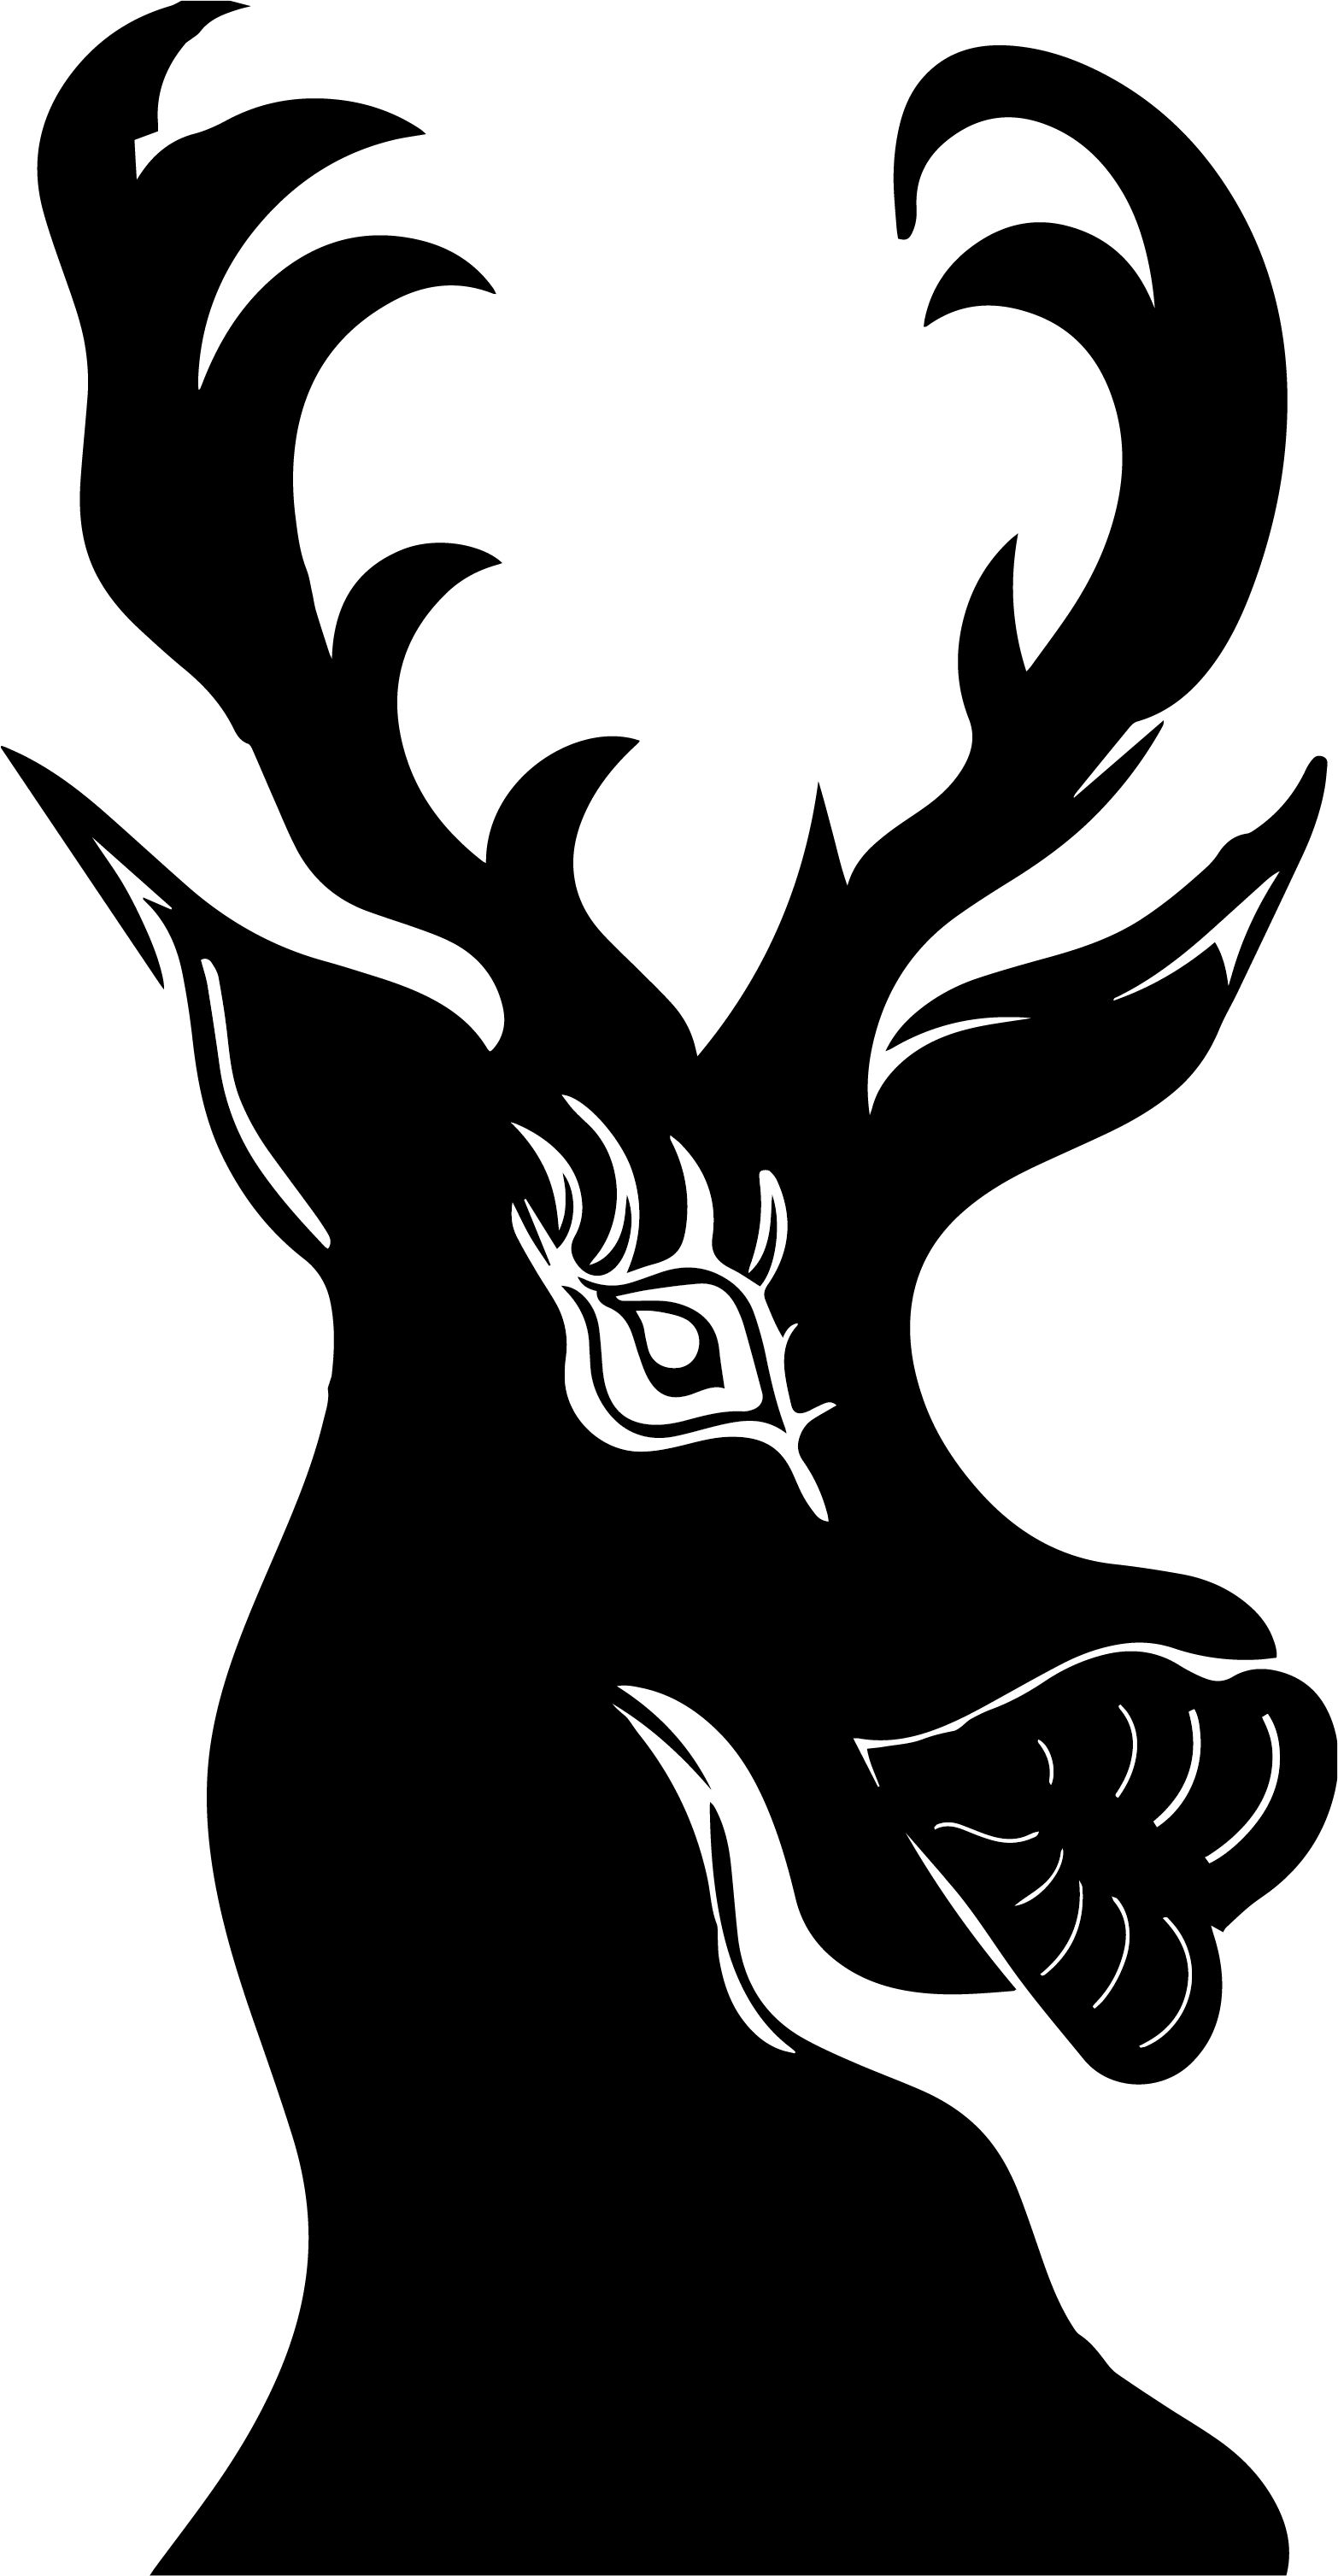 sheer black reindeer icon